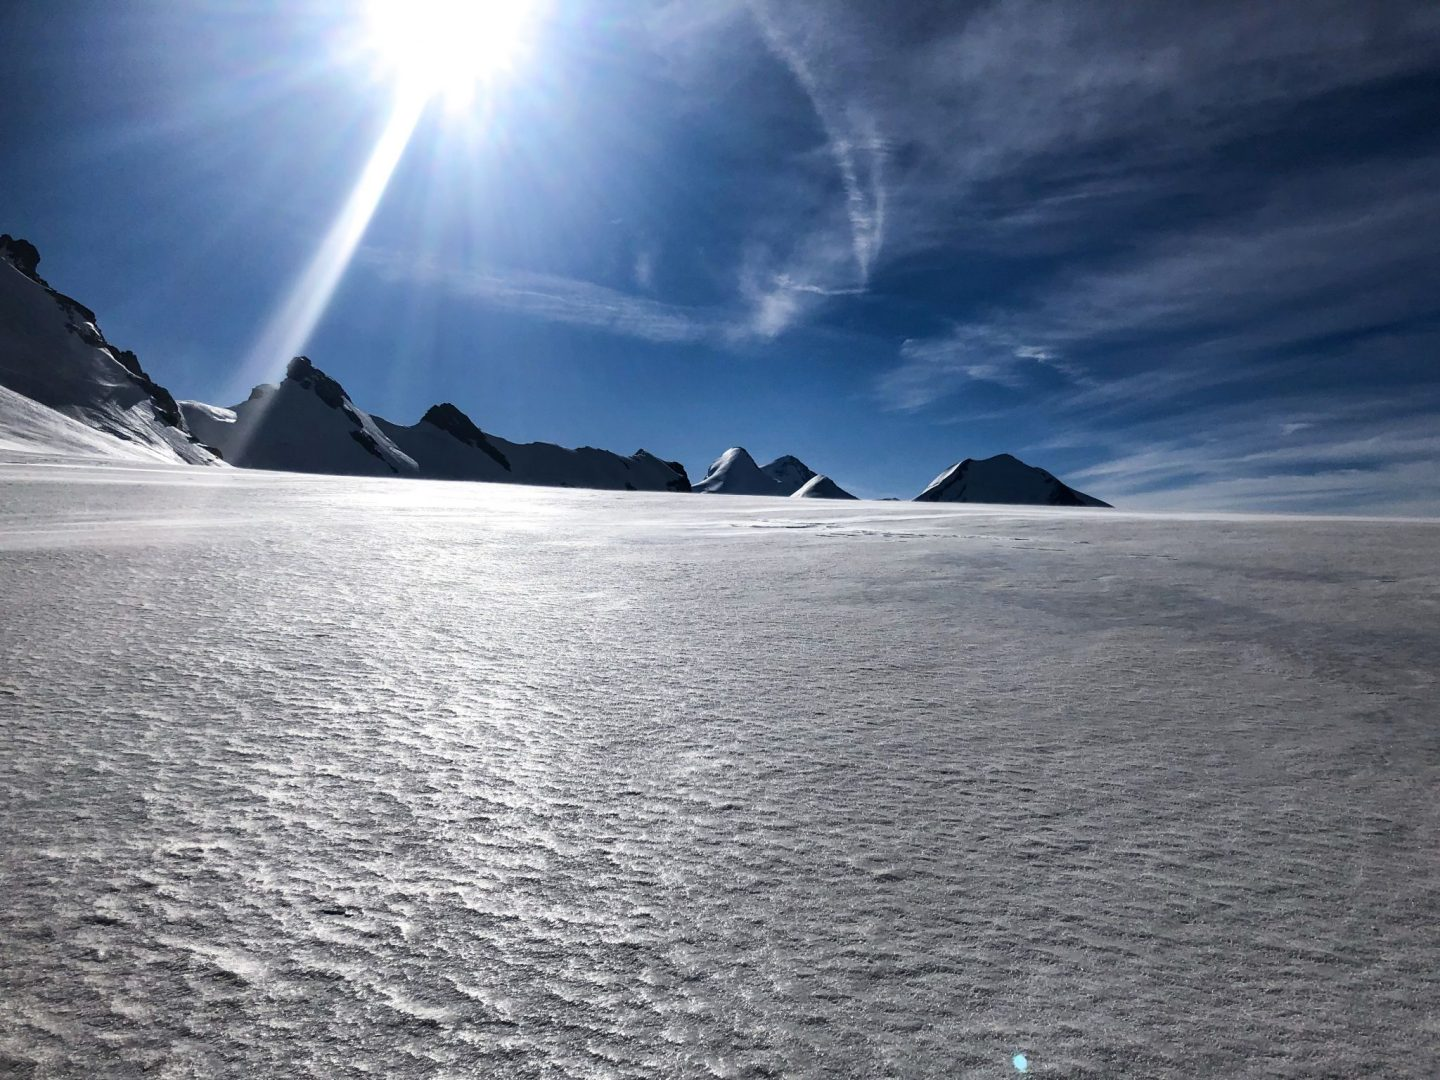 An expanse of snow with mountain peaks in the background and the sun reflecting off the glacier